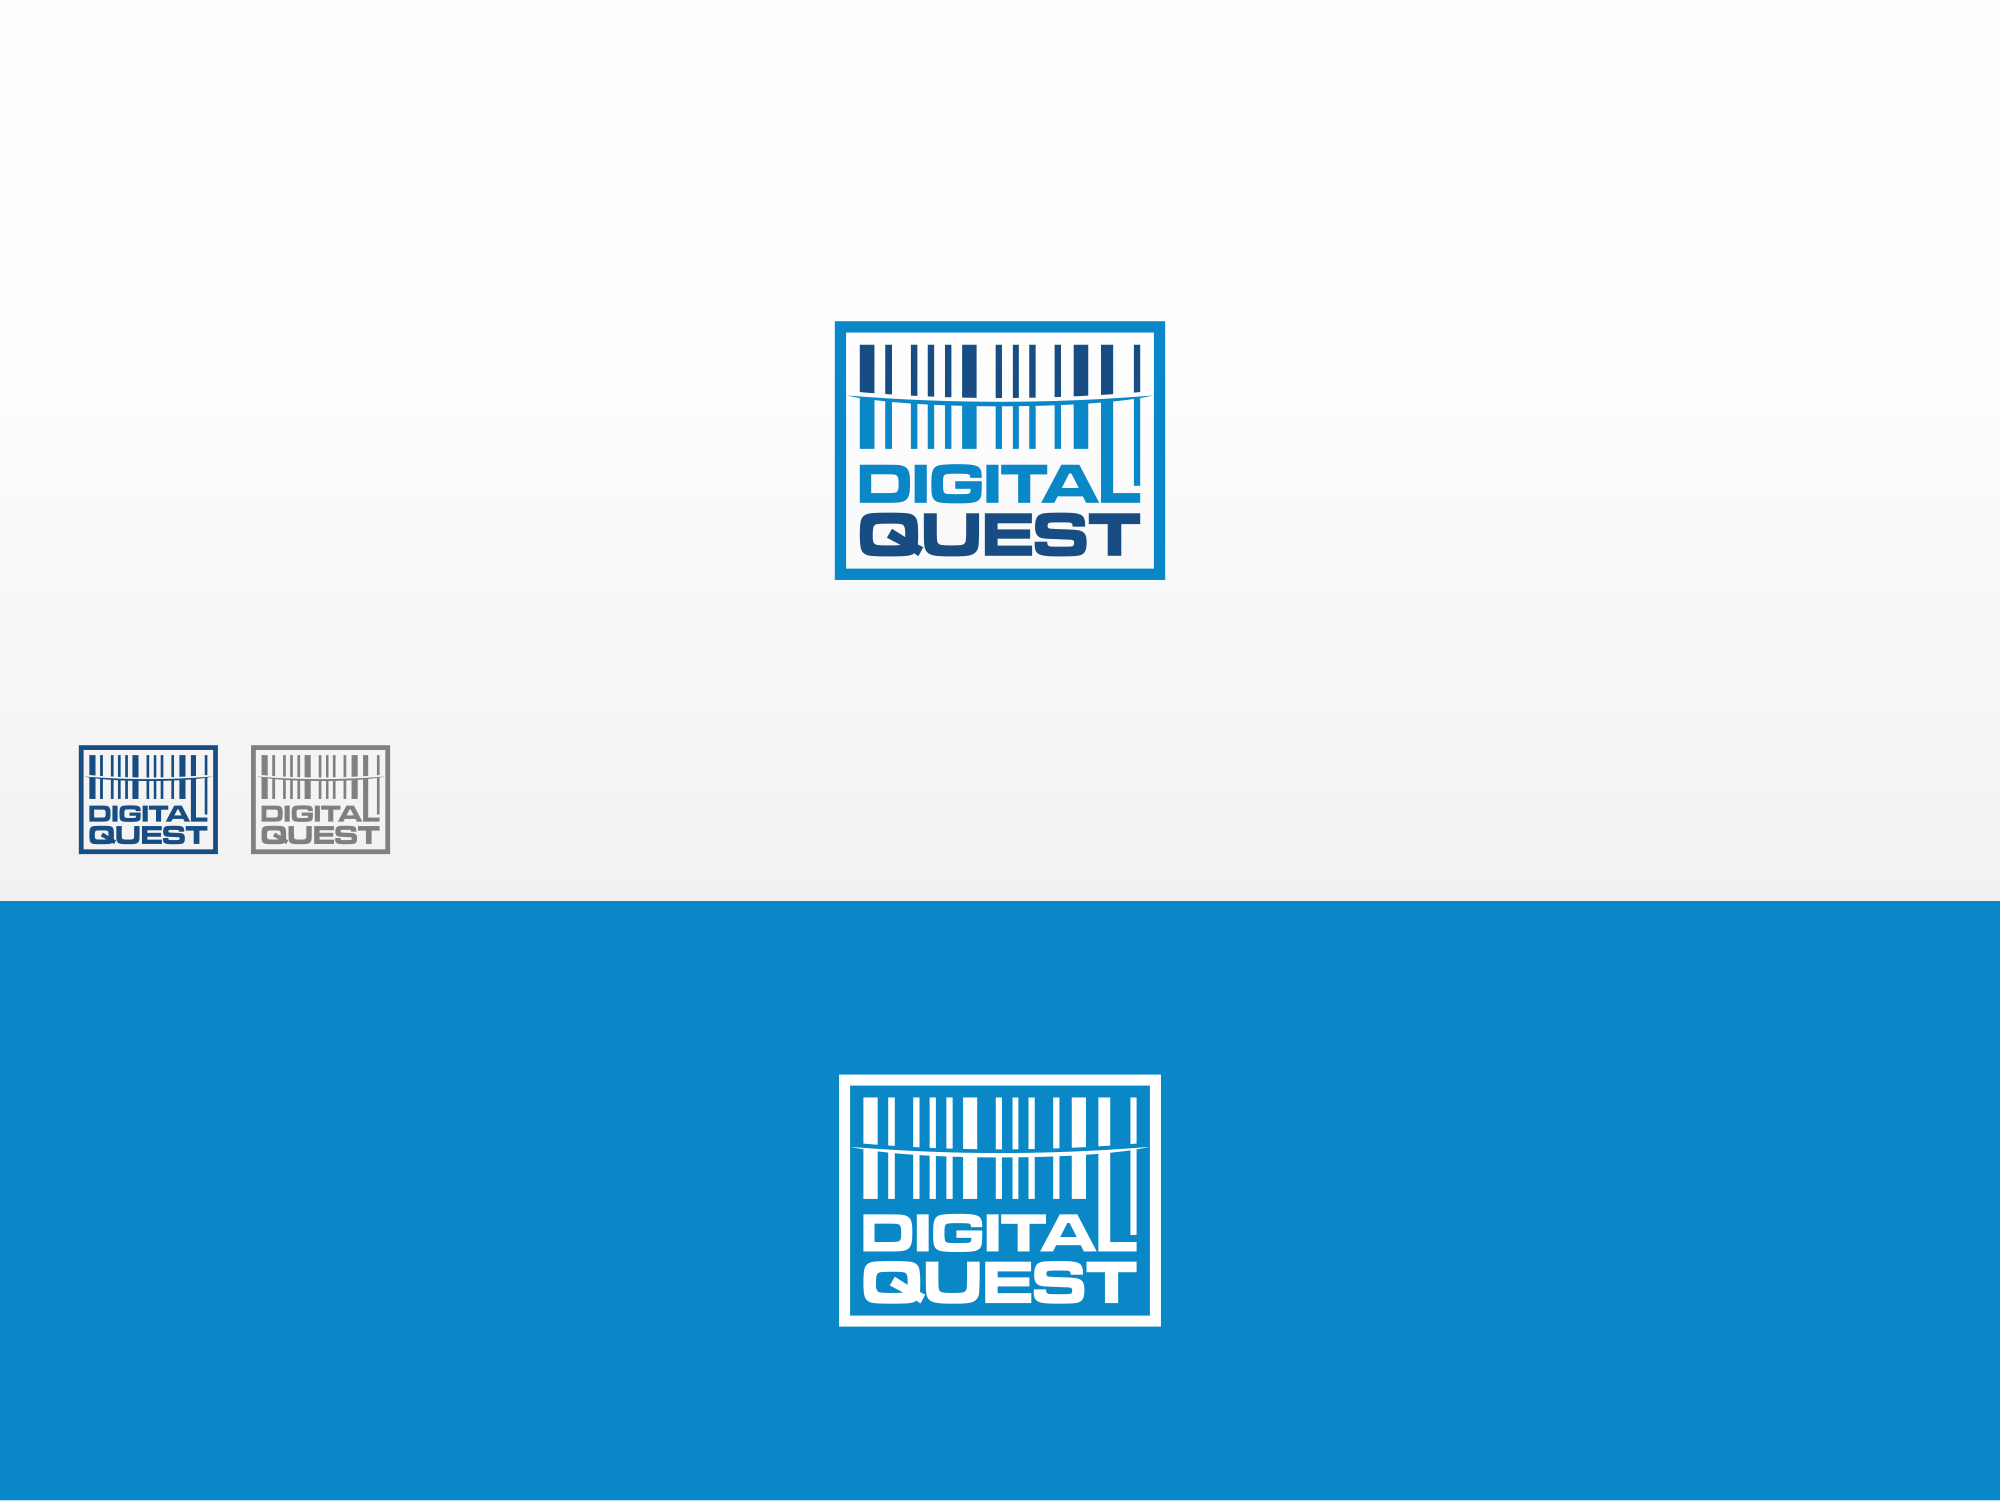 Creative logo design that gives a wow effect for Digital Quest